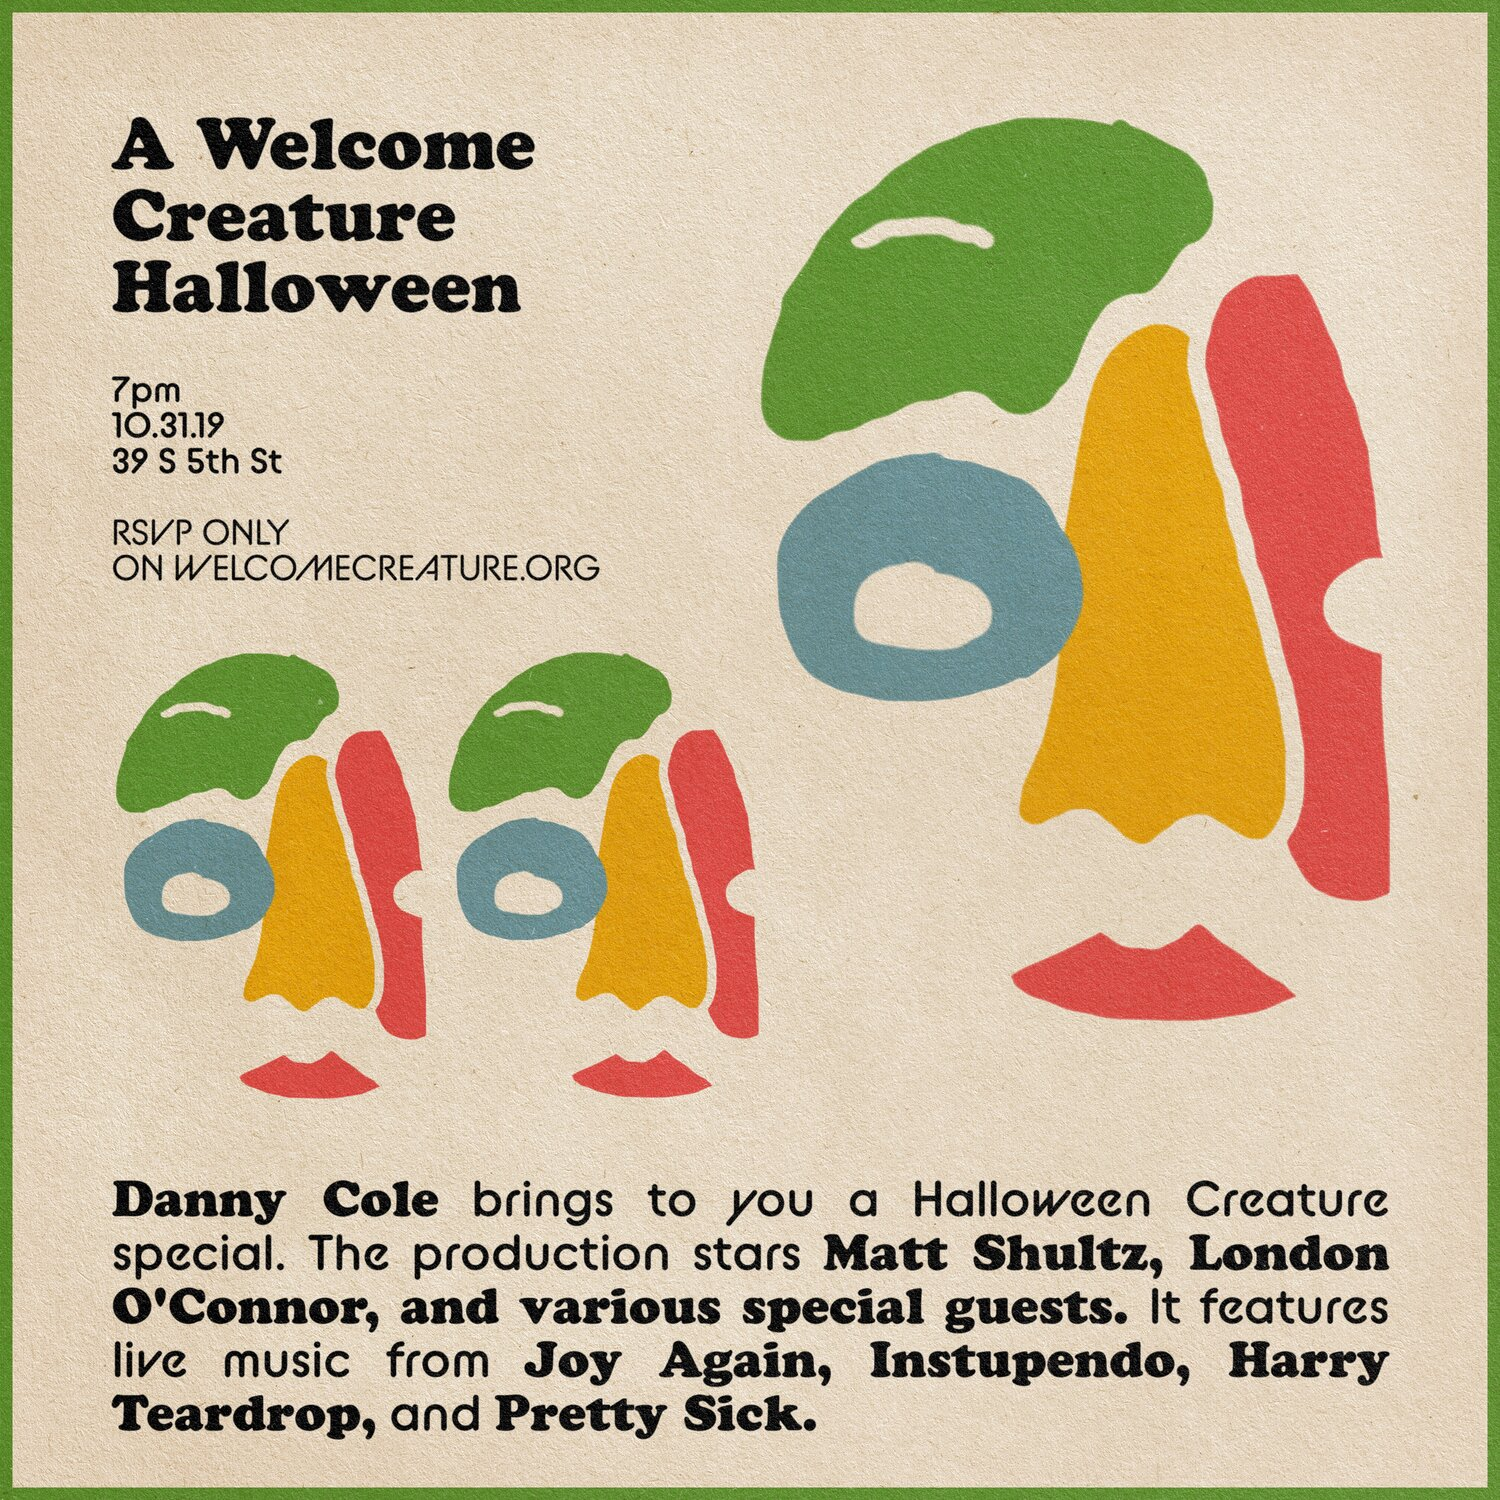 Nyc Halloween October 2020 Rsvp Danny Cole Halloween – Oct 31st, 2019 | NYC EVENT PRO